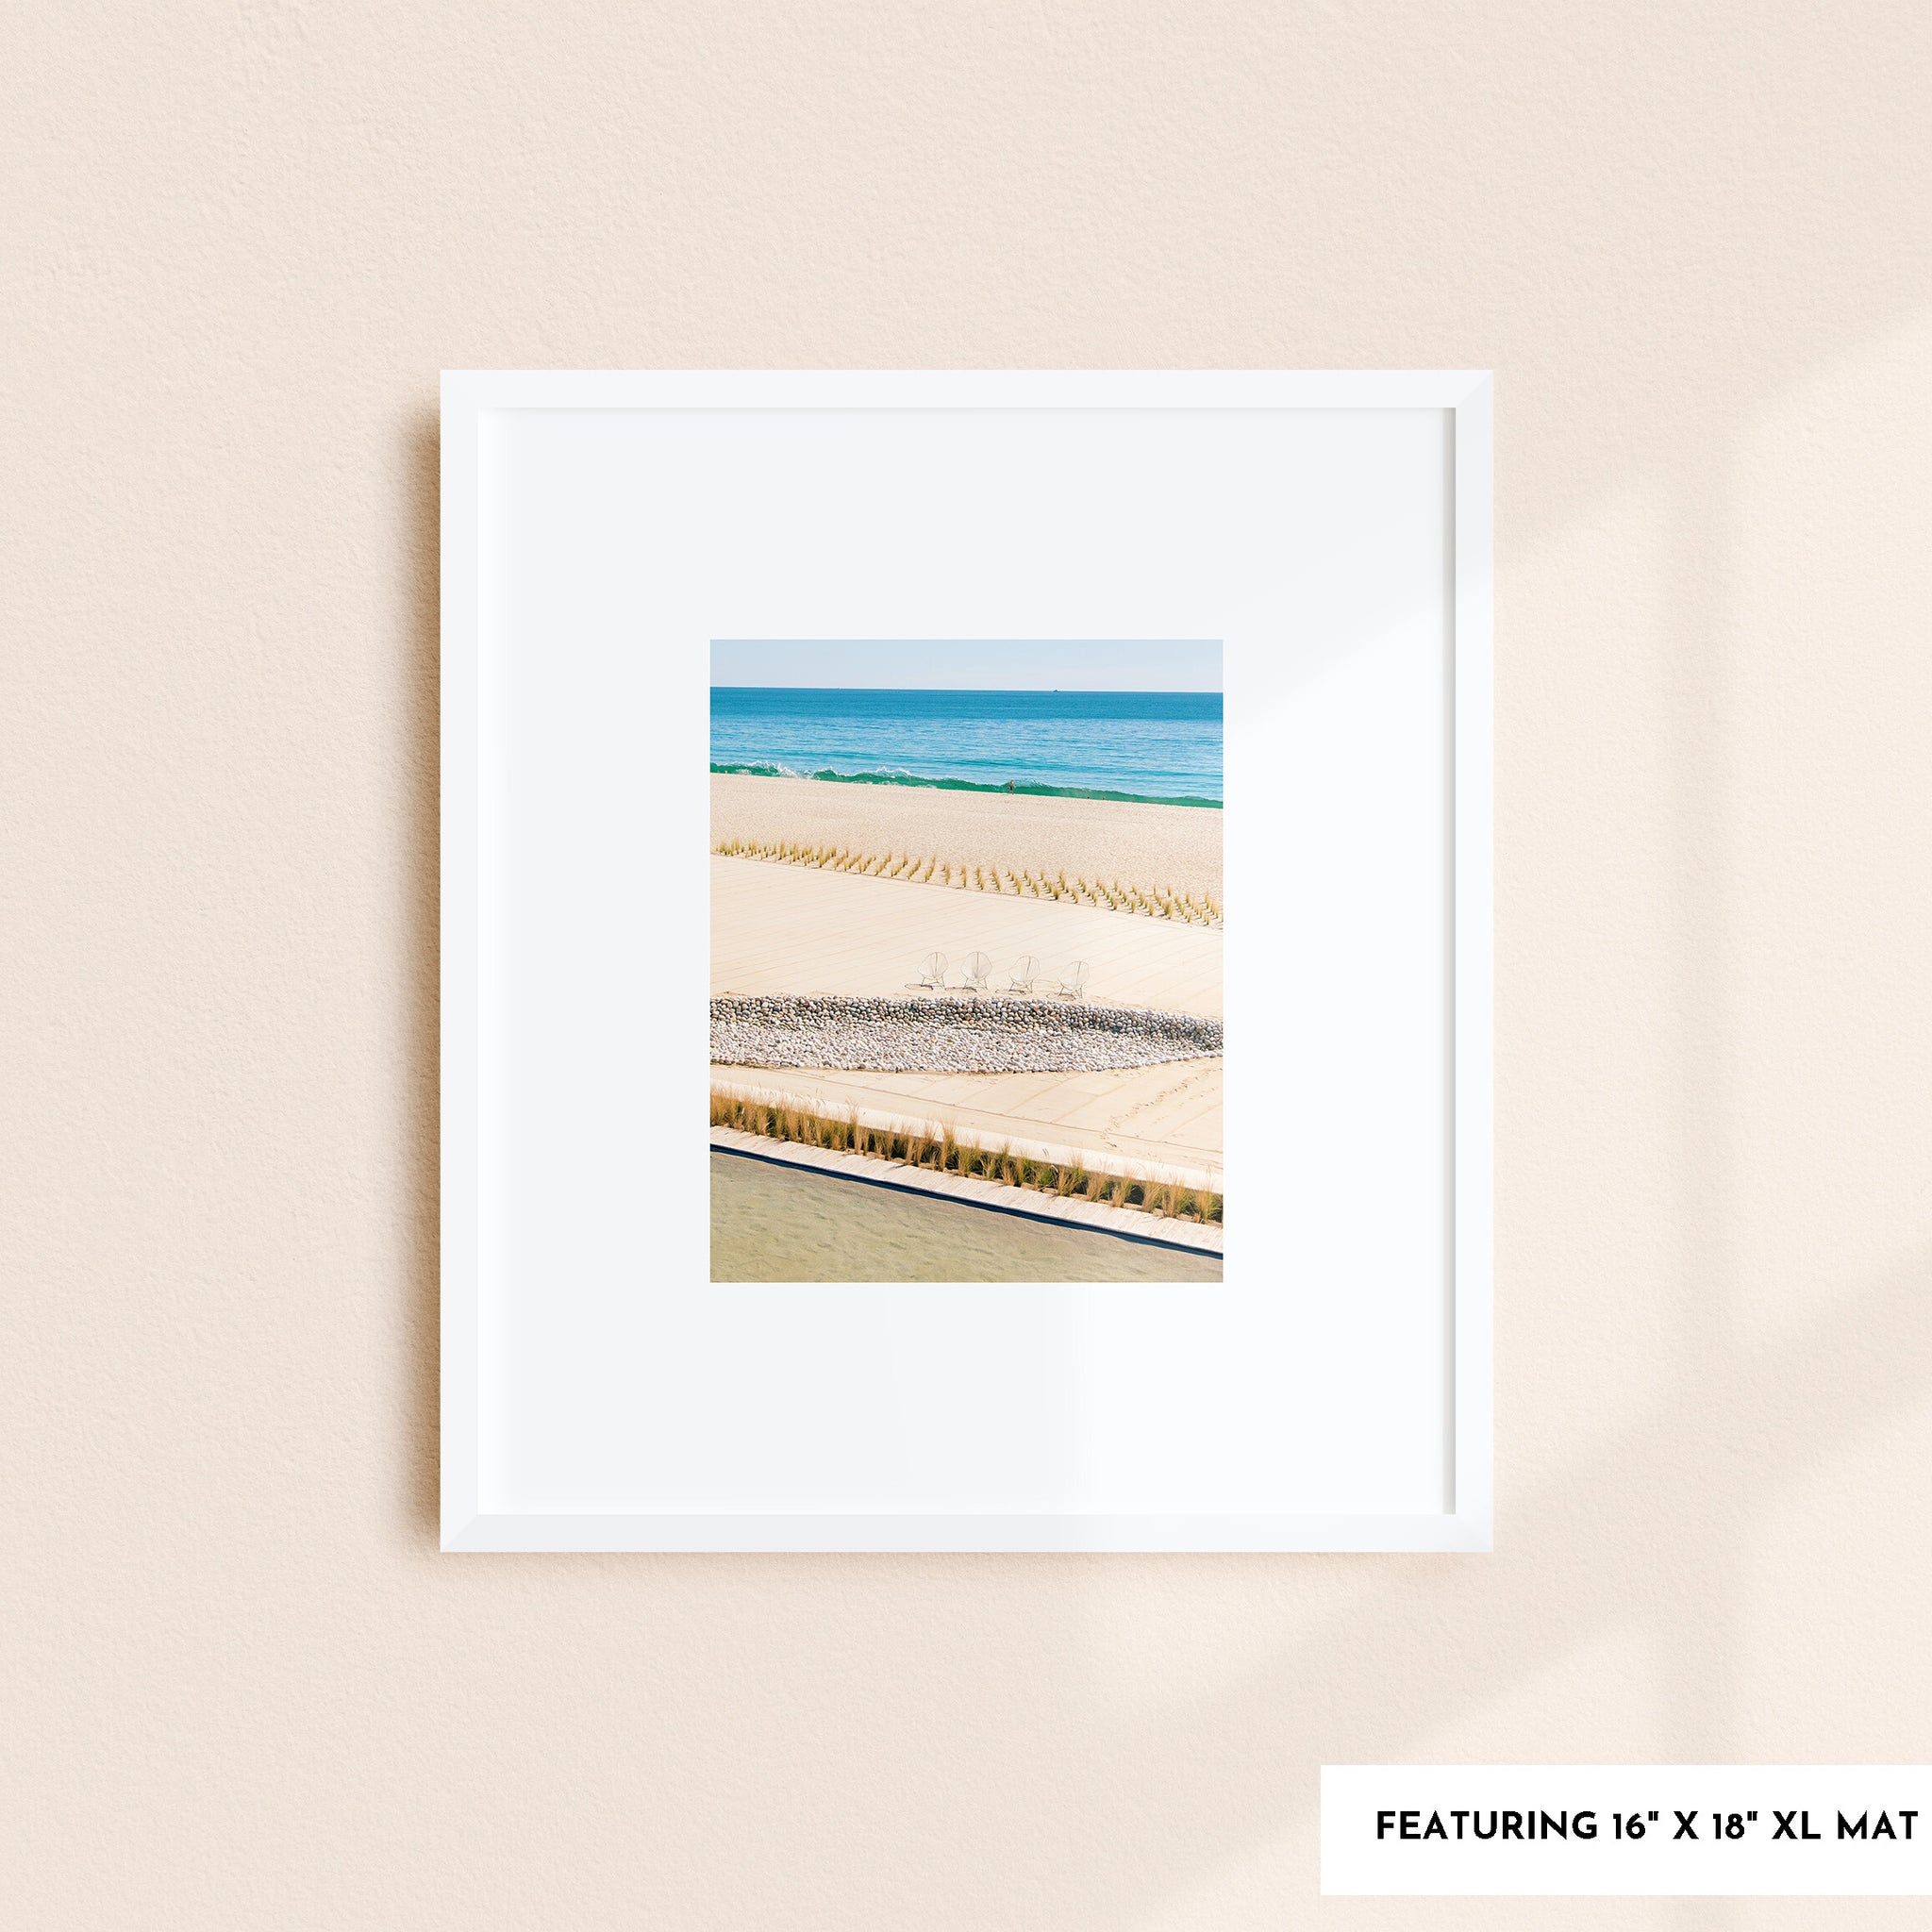 "A framed art print with an extra-large 4"" white mat against a peach colored wall."